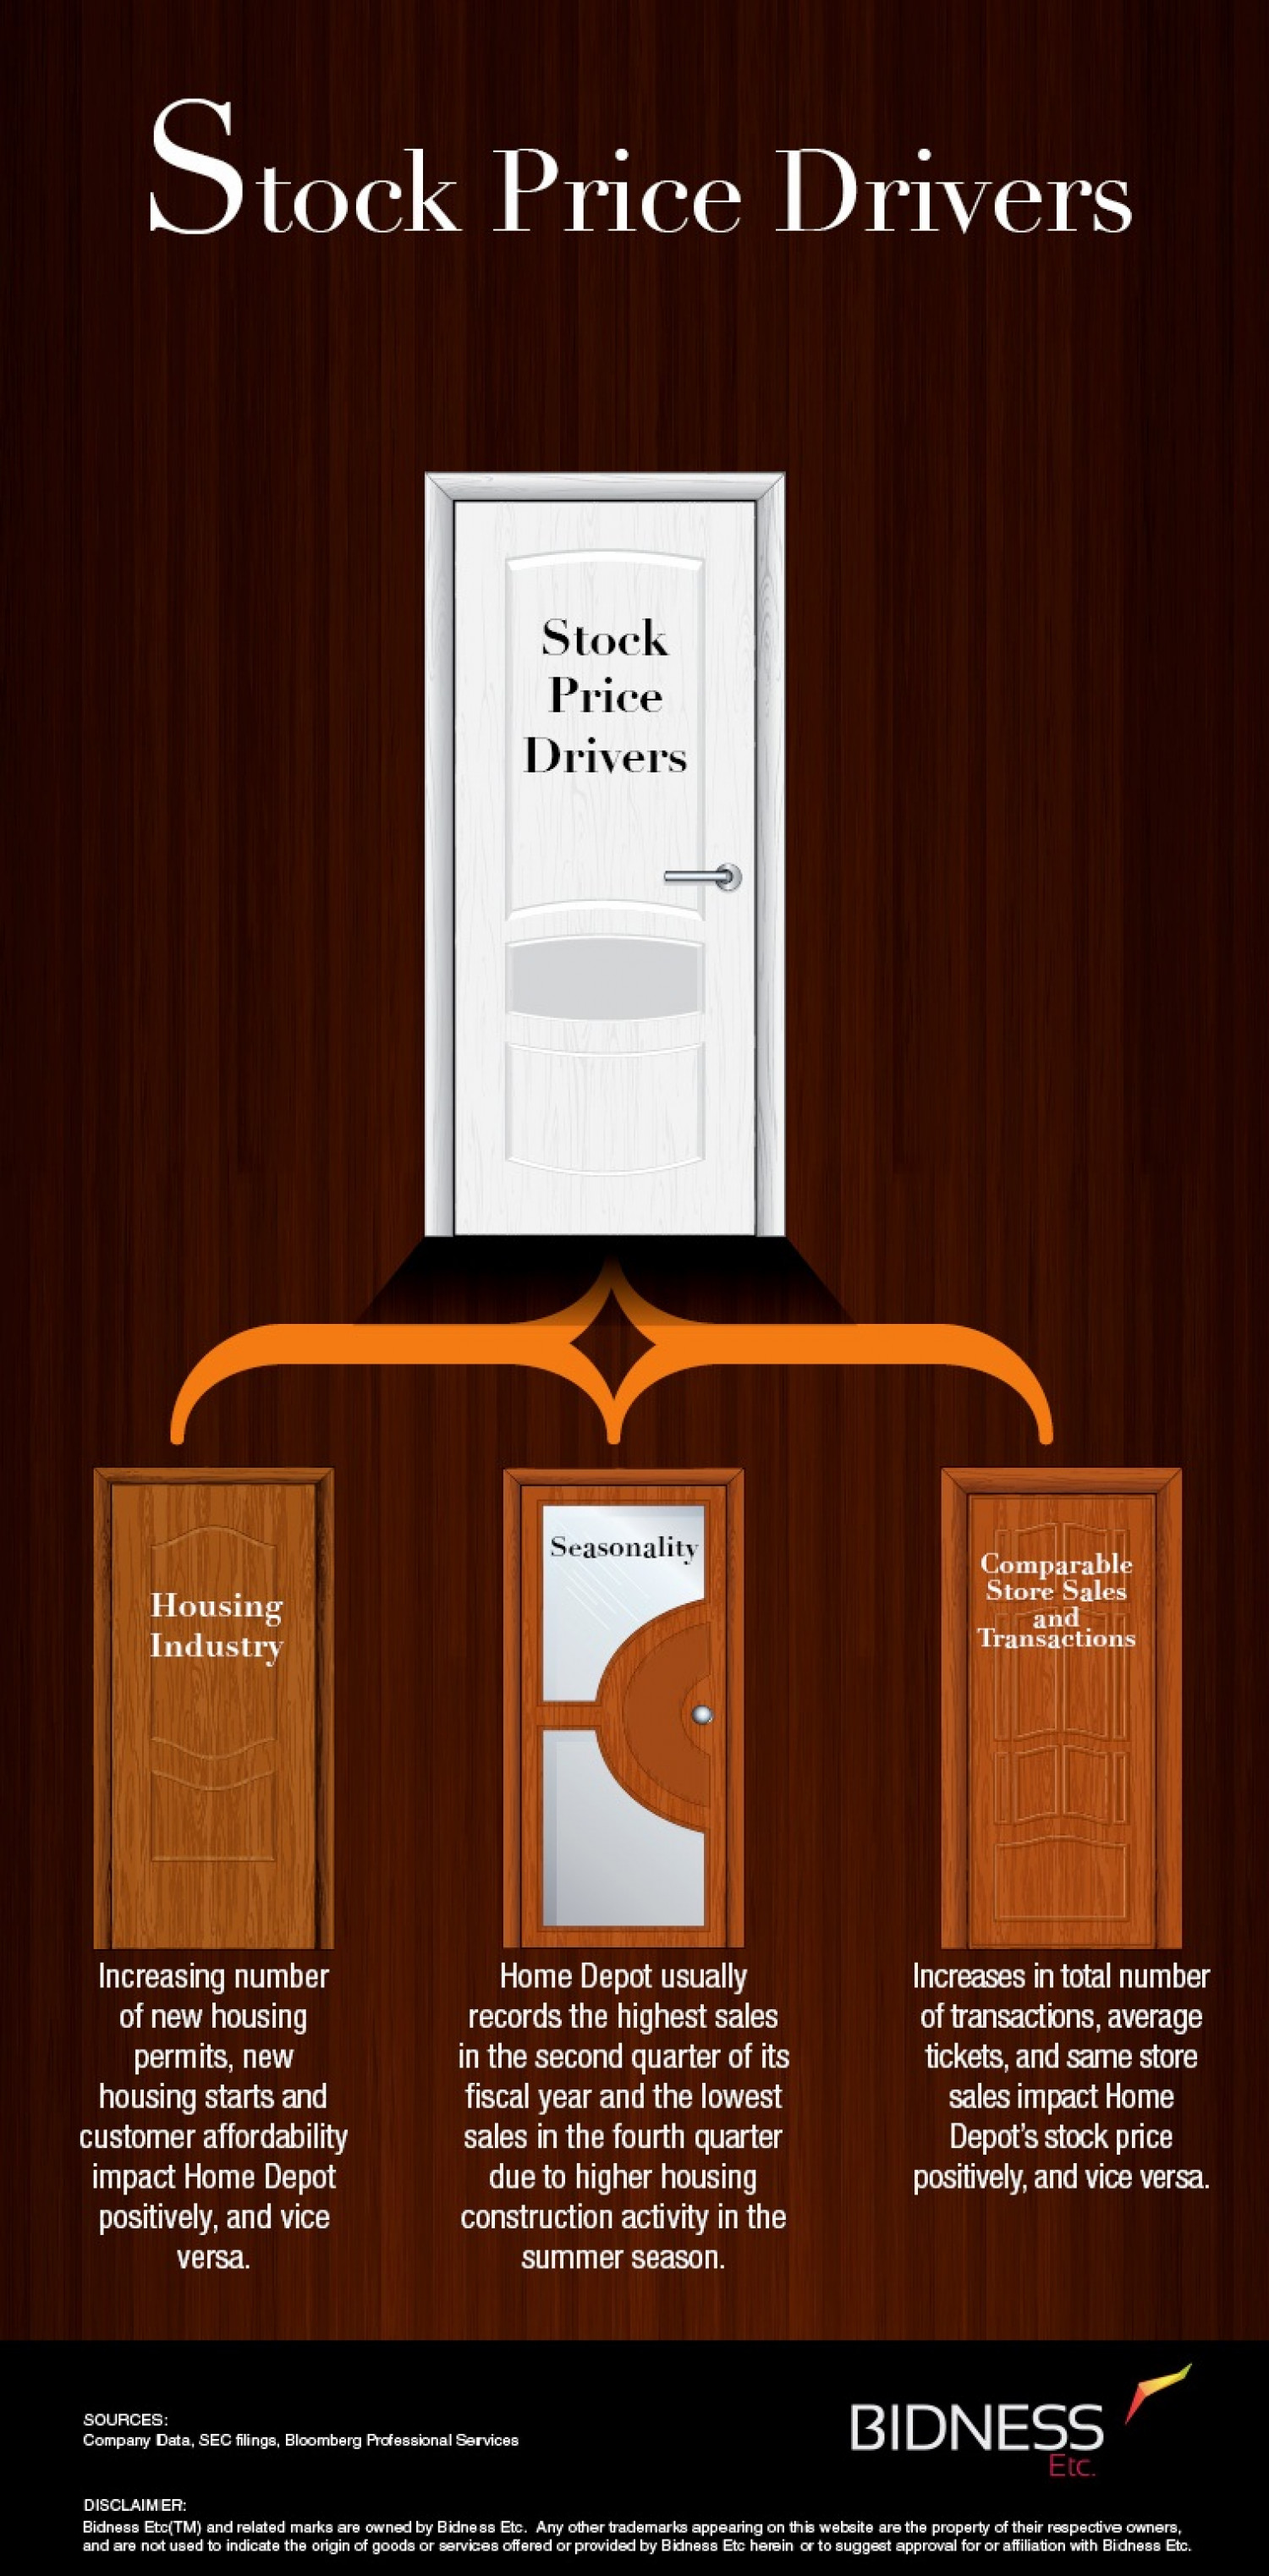 Home Depot (HD) Stock Price Drivers Infographic